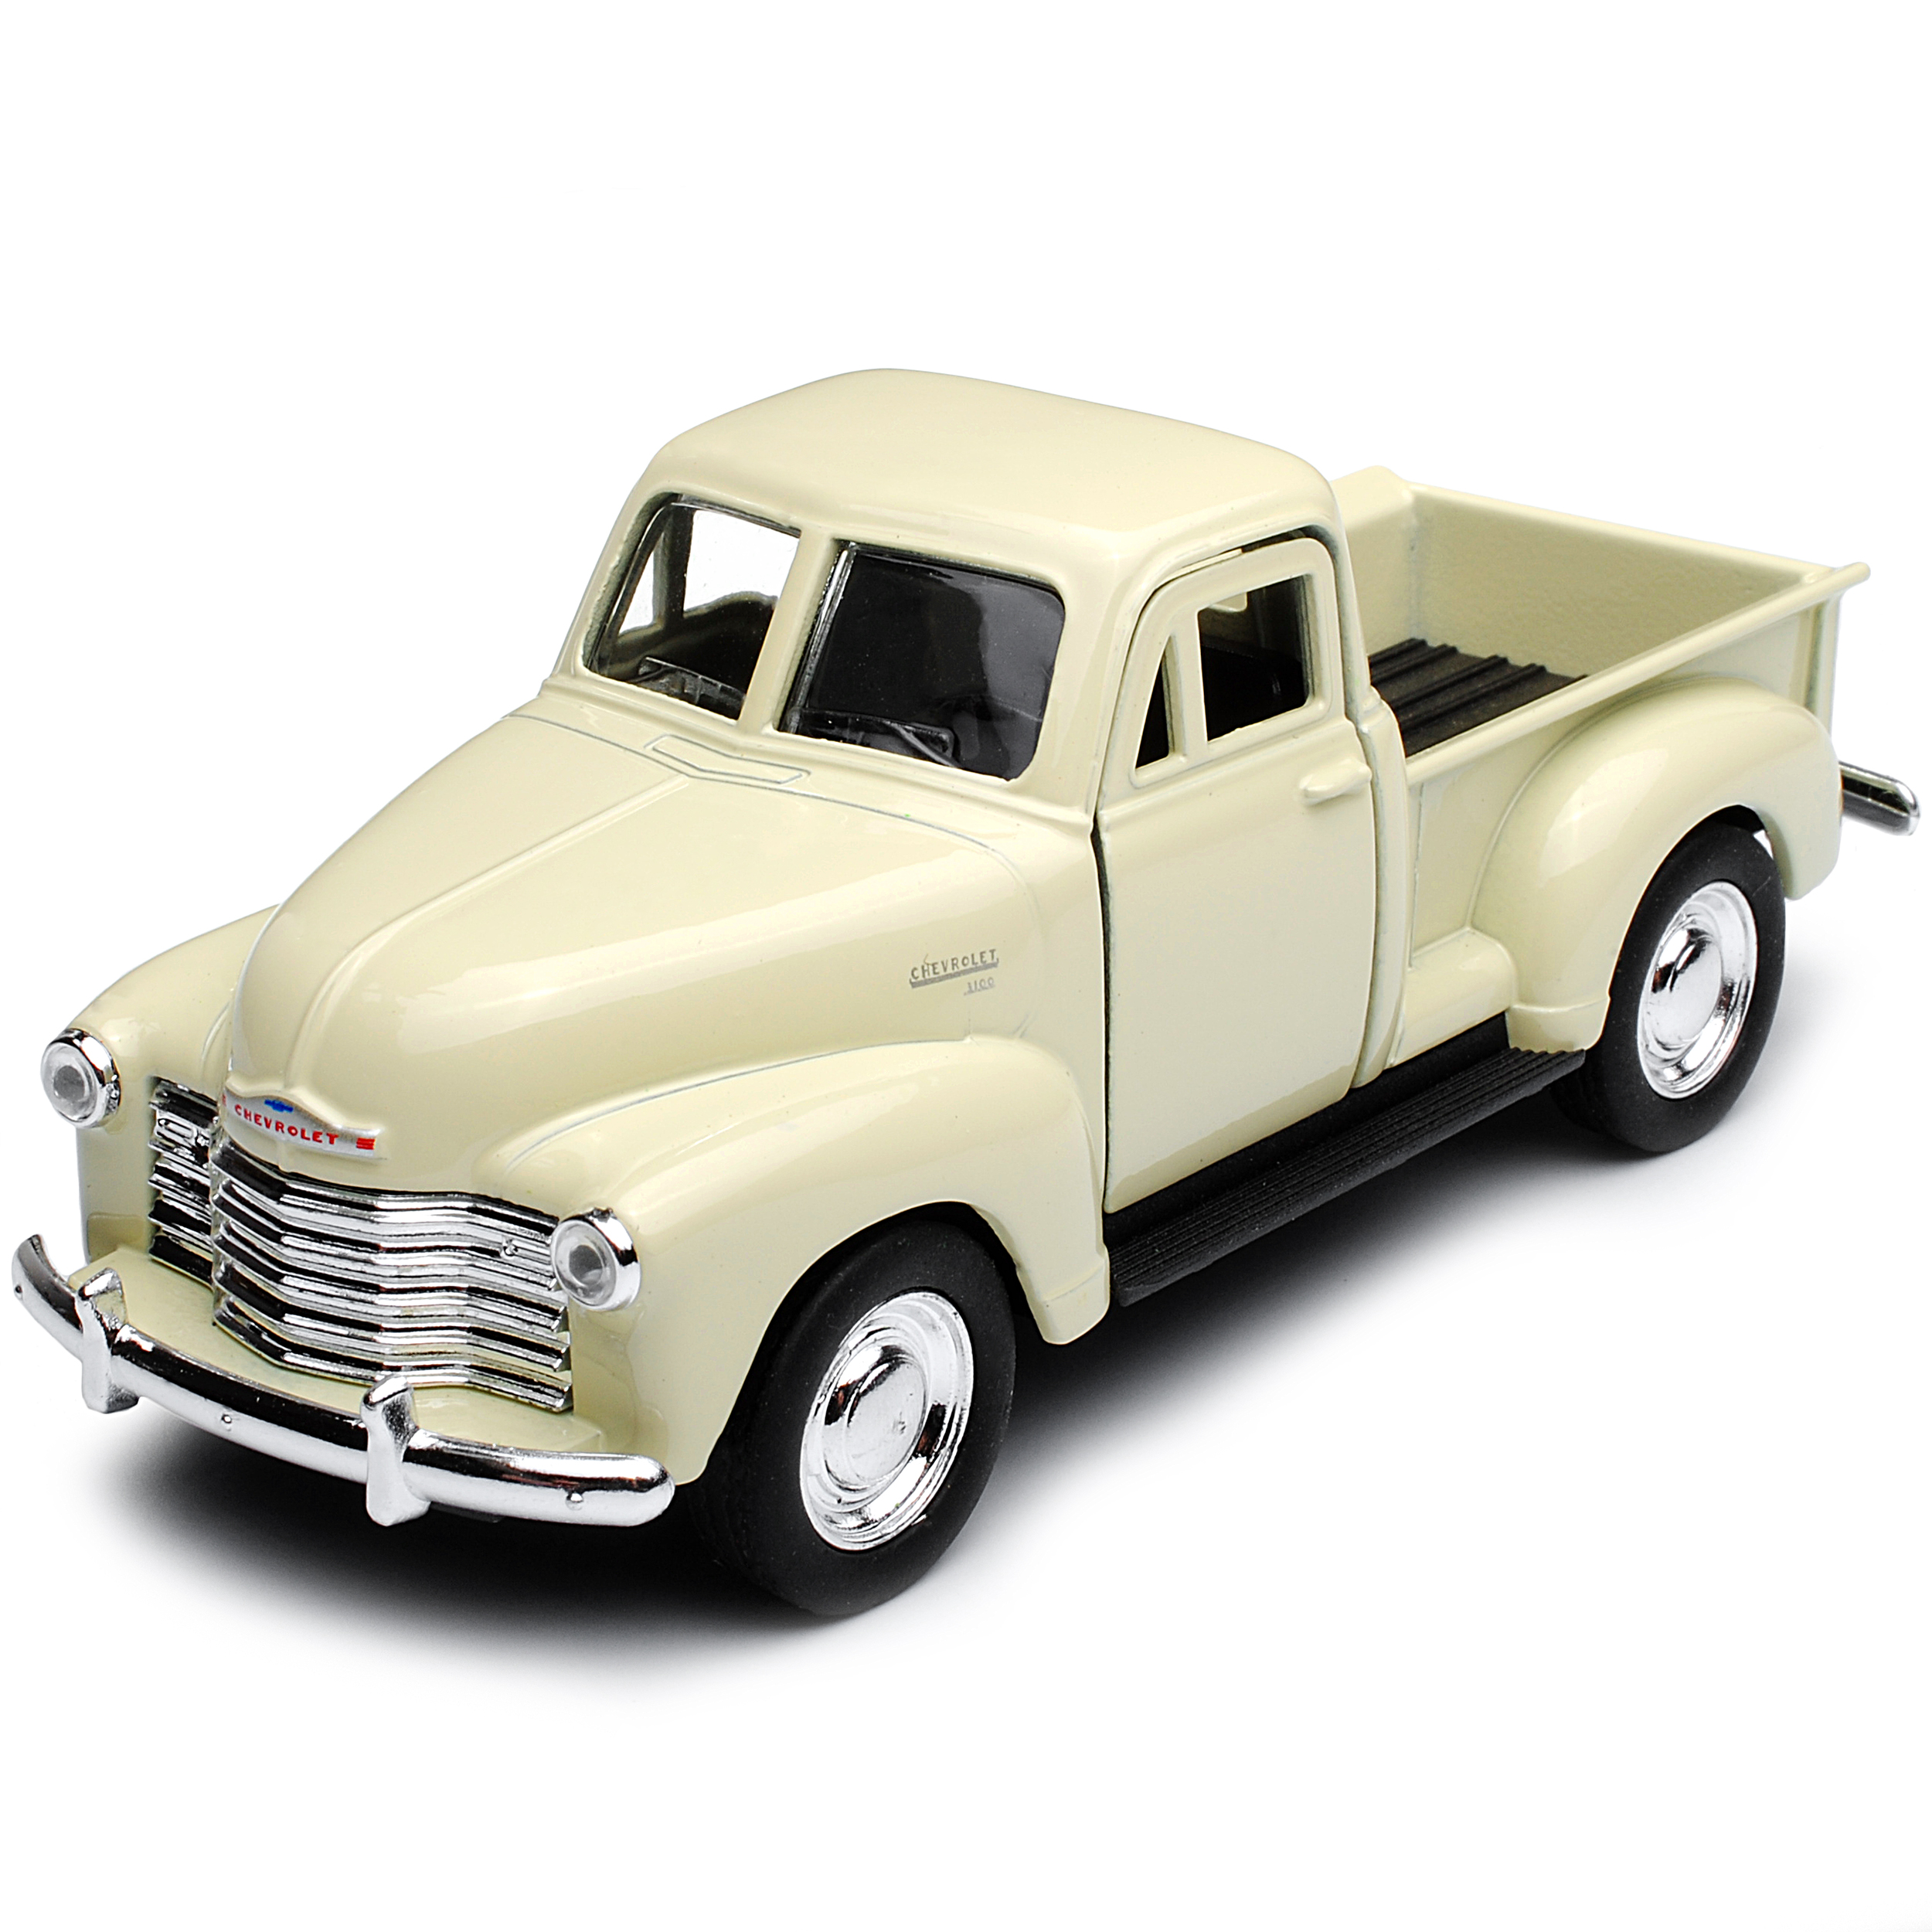 Chevrolet Chevy 3100 Pick-Up Beige Cream 1953 ca 1//43 1//36-1//46 Welly Modell A..